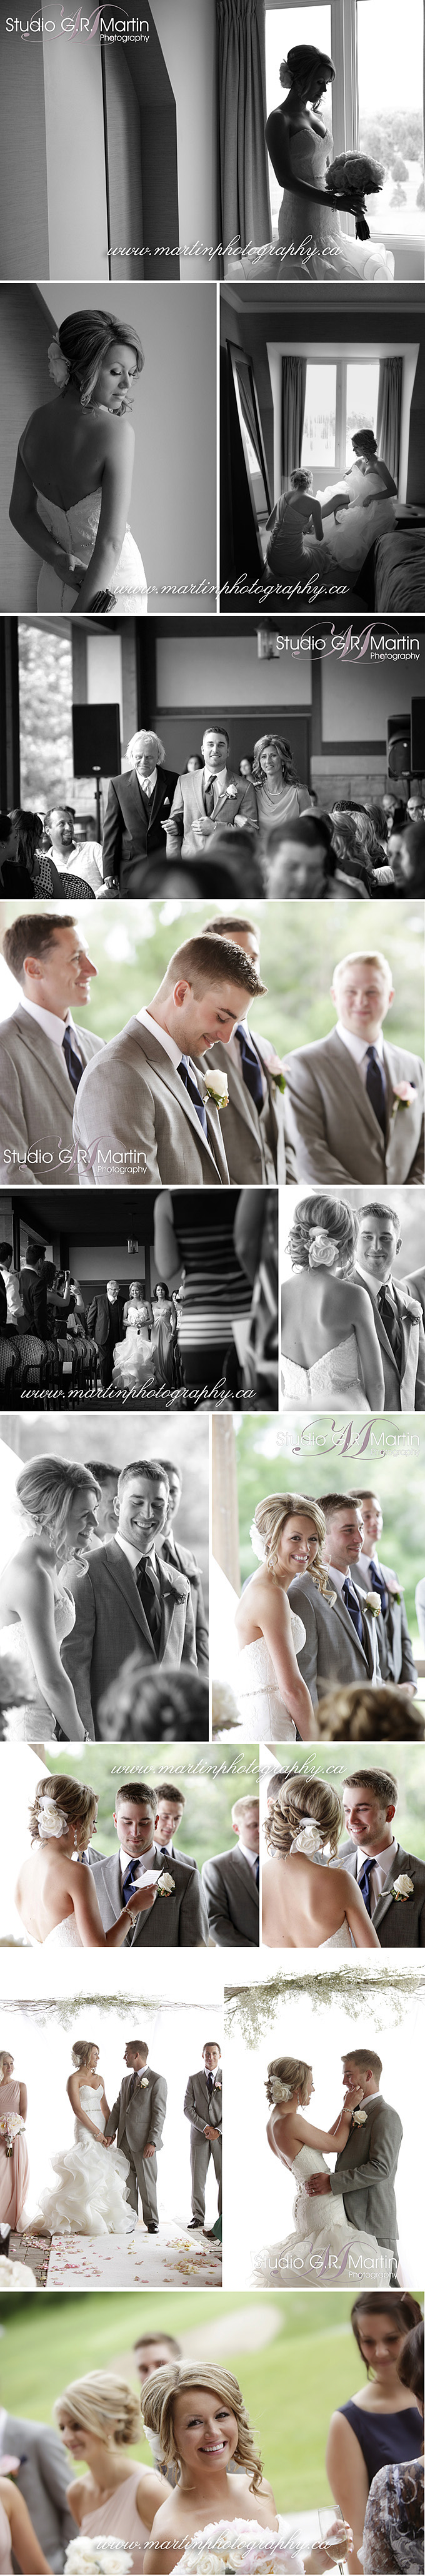 Ottawa - Gatineau Wedding Photographers